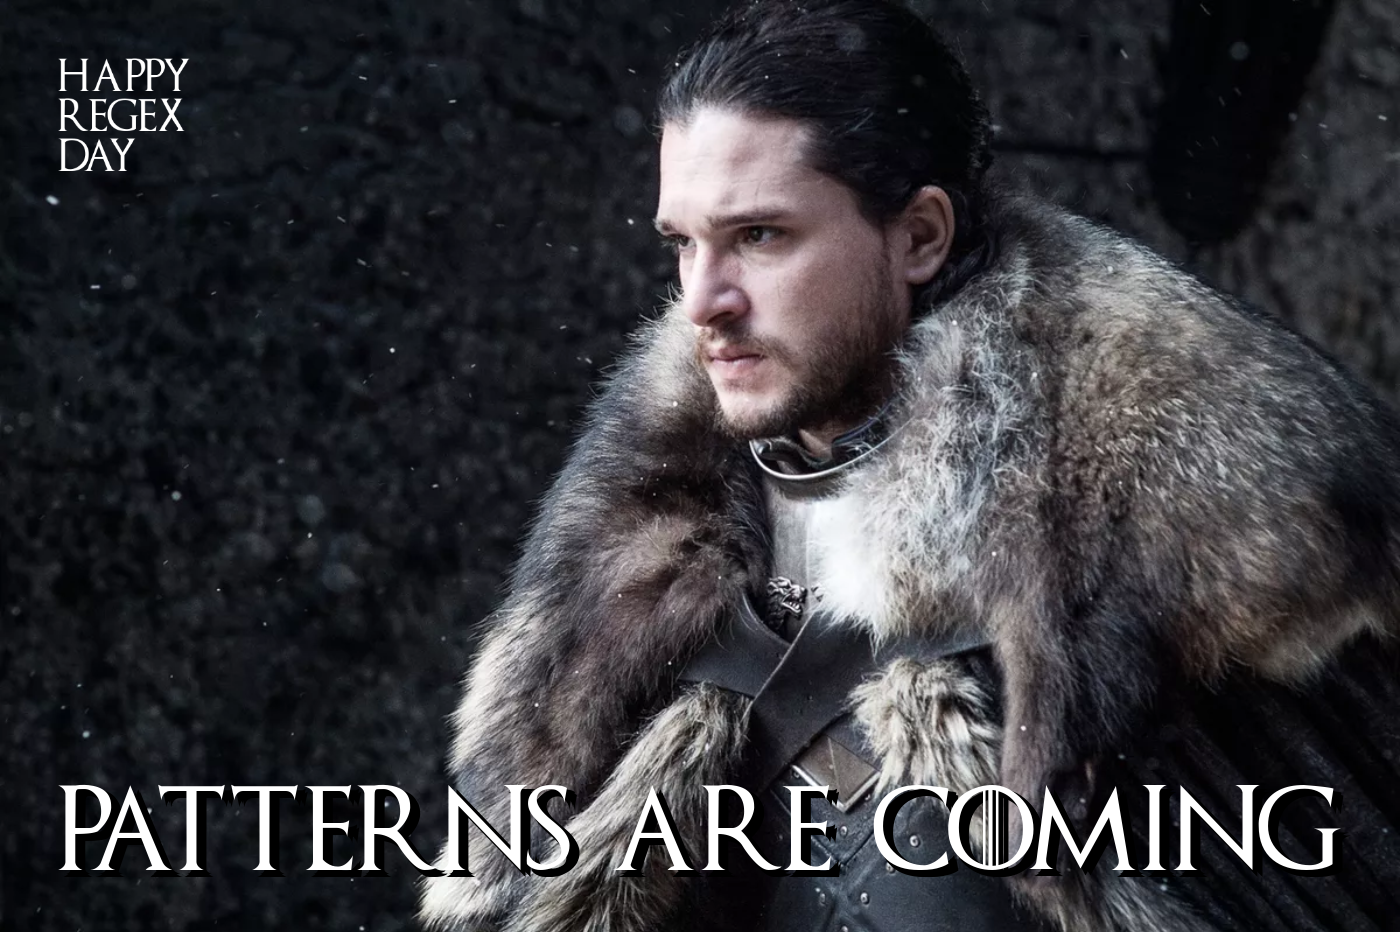 Happy RegEx Day: Patterns Are Coming! (Game of Thrones spoof)